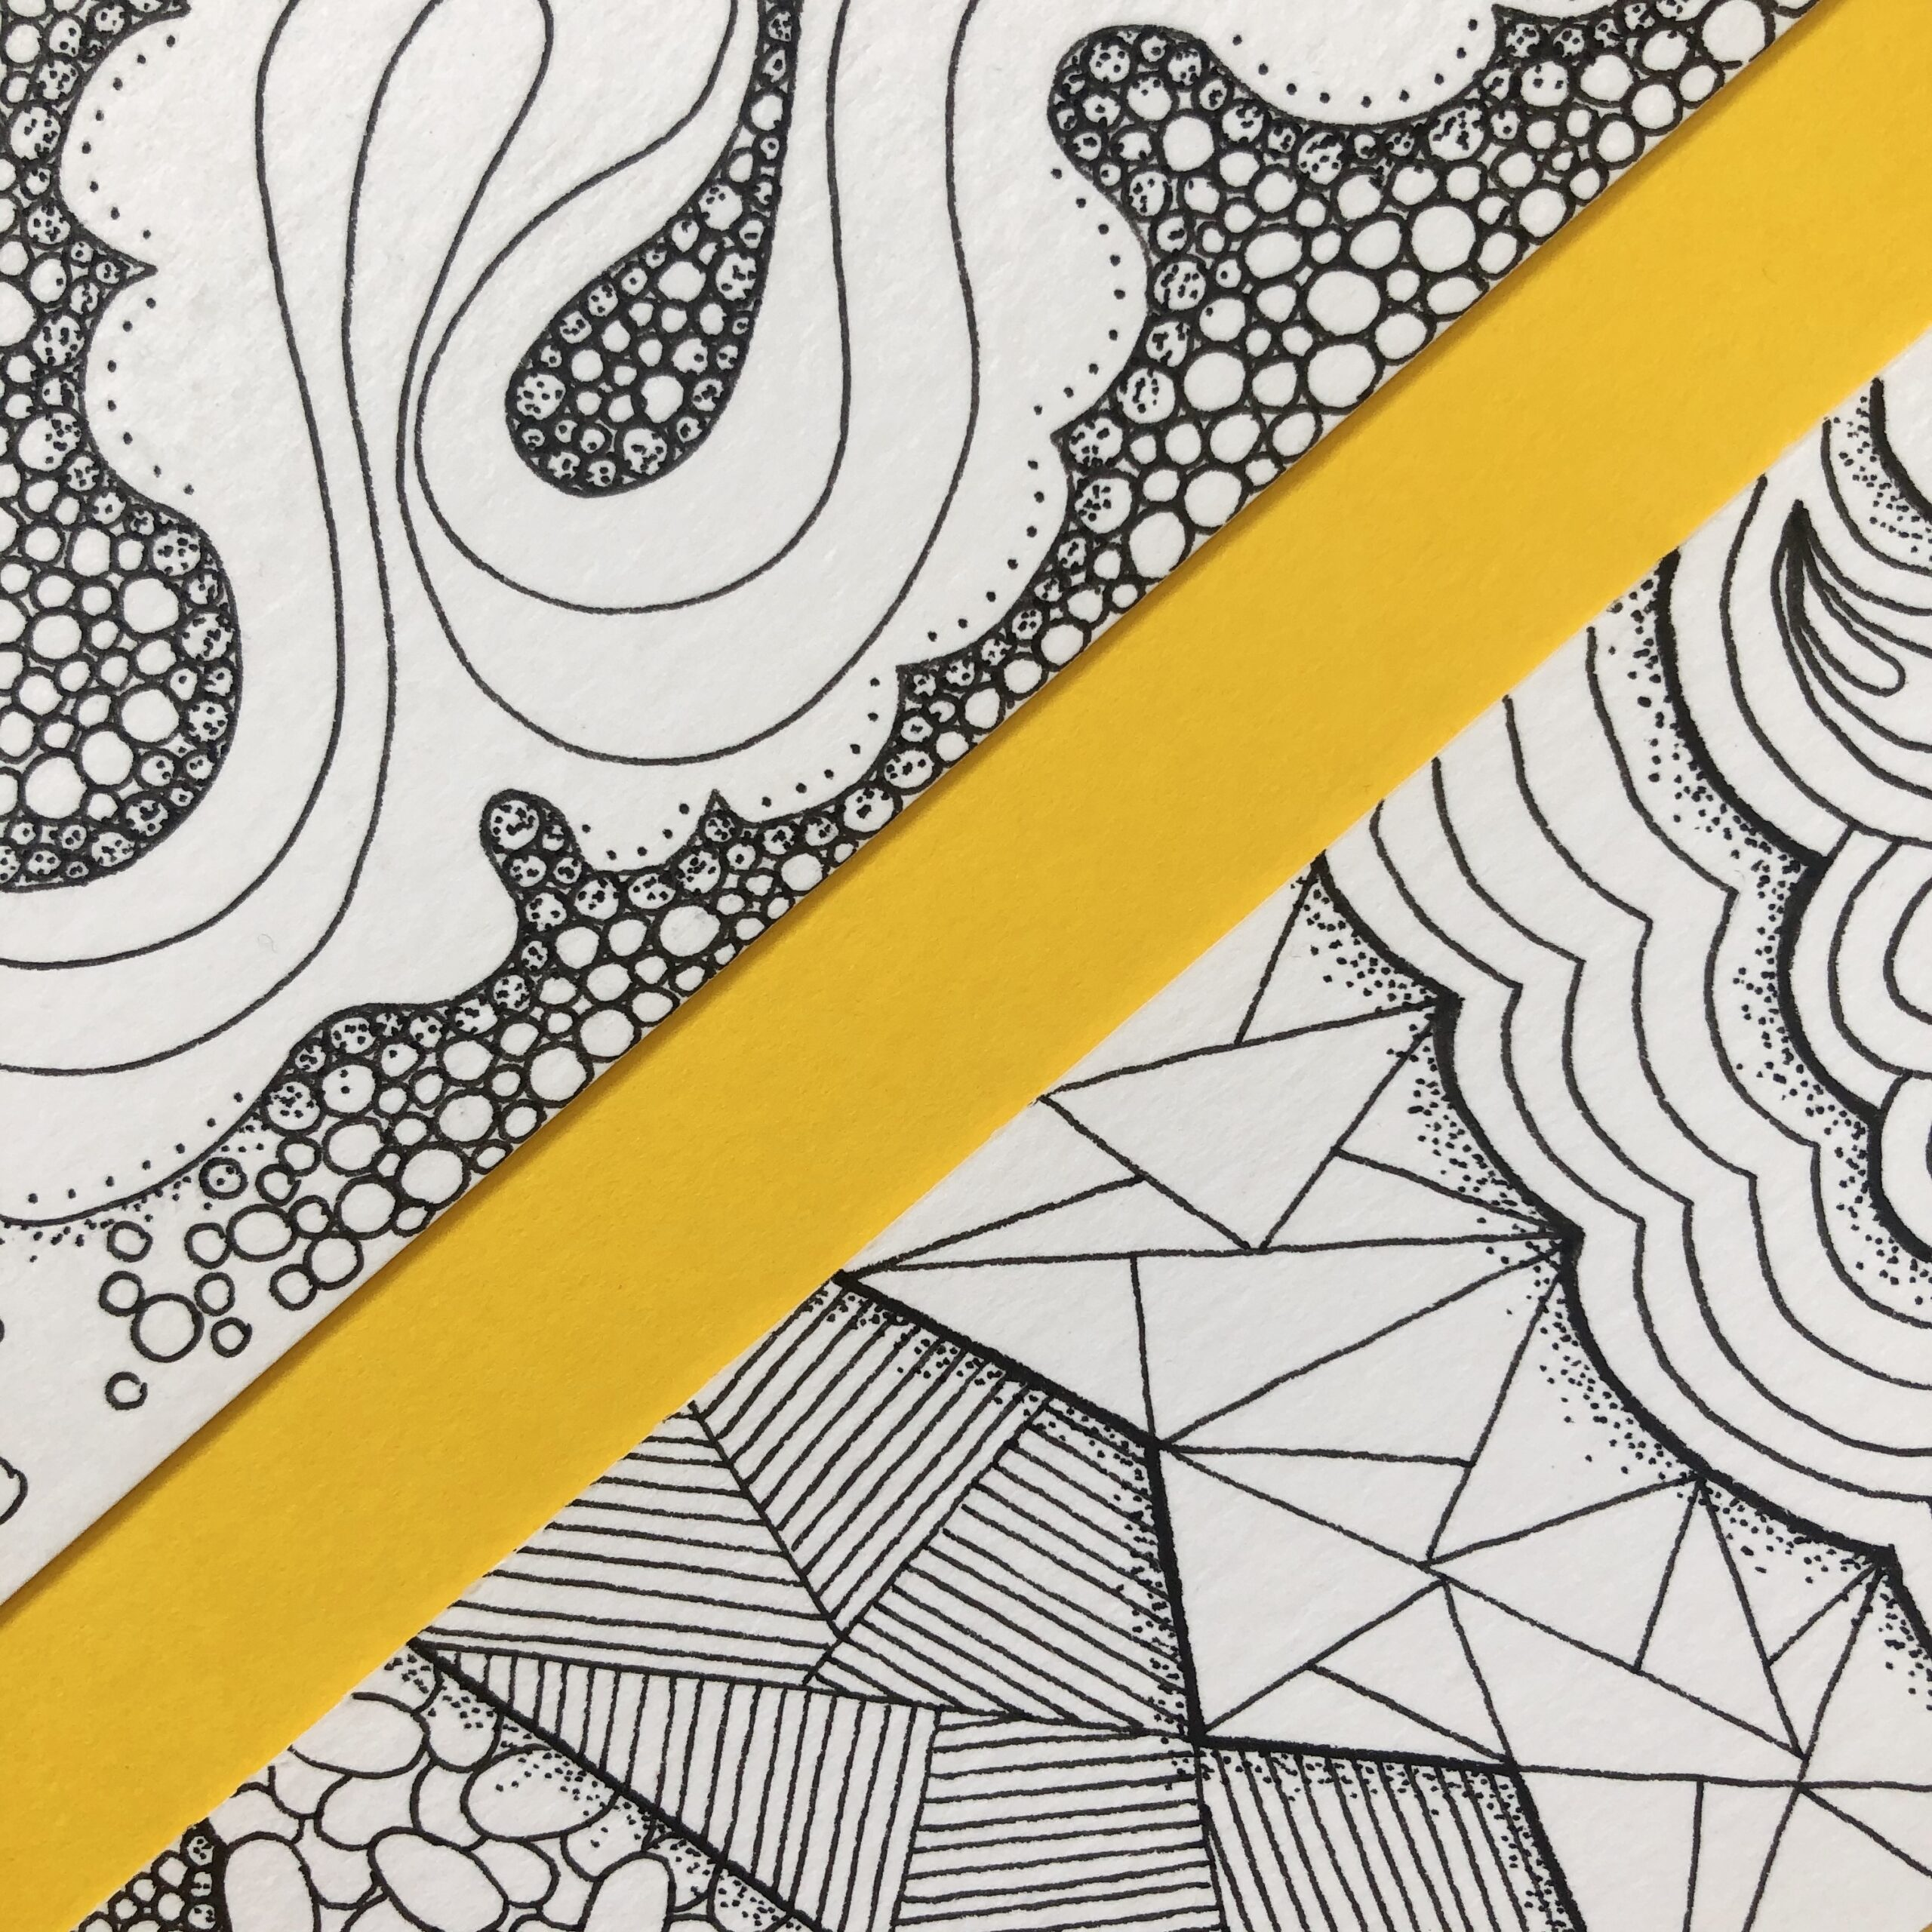 Close-up section of two hand drawn, handcrafted bookmarks featuring zentangle patterns, perfect gift for bookworms